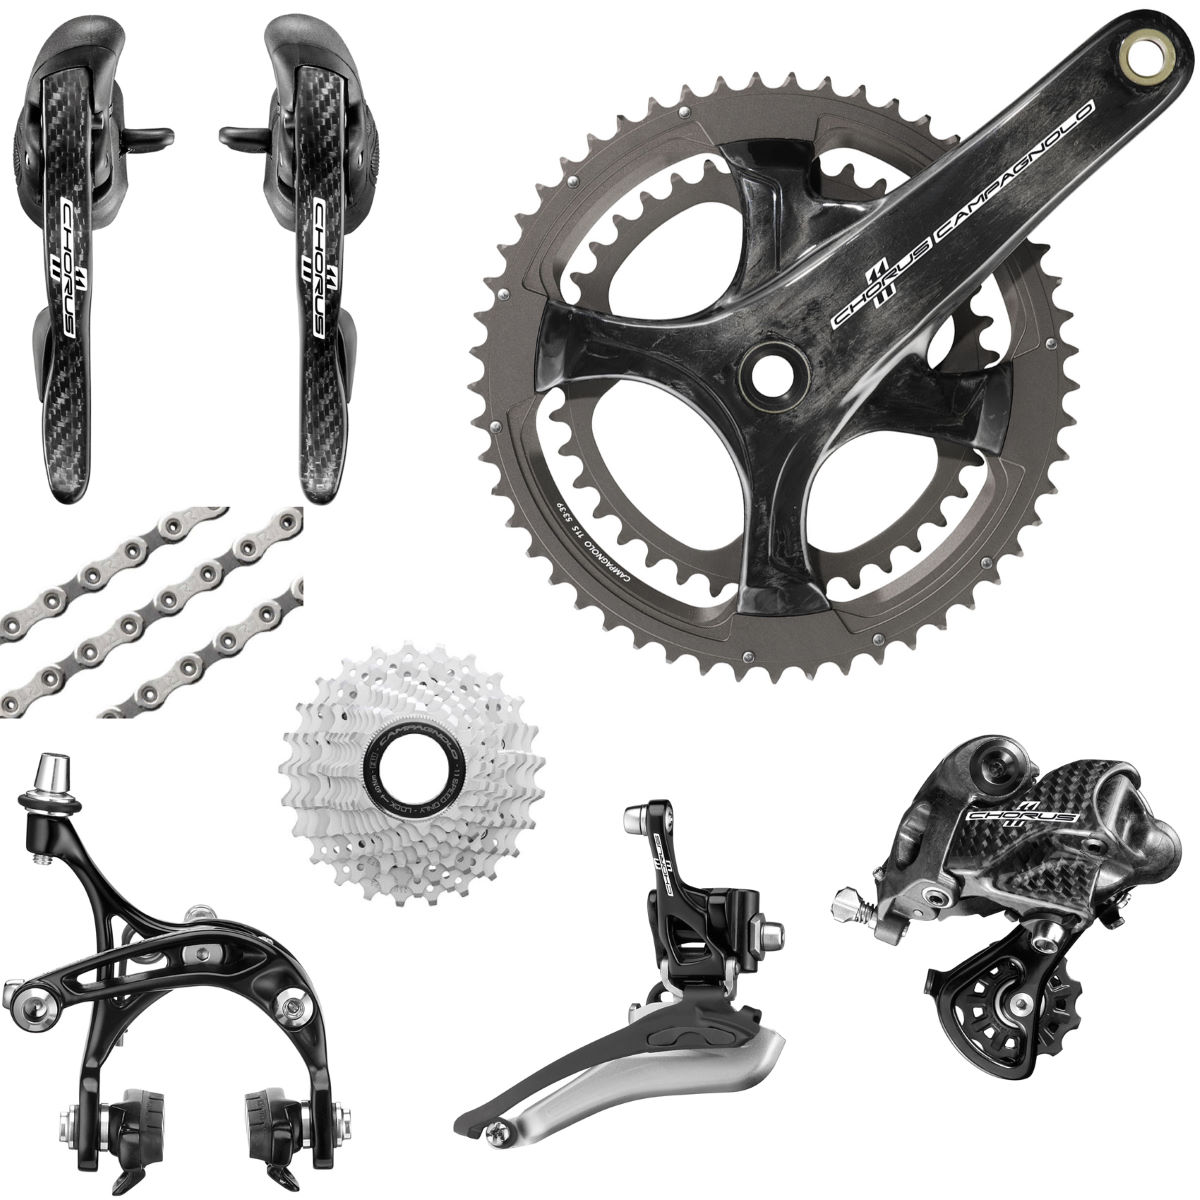 Groupe Campagnolo Chorus (Carbone) 11 vitesses - -175mm x 50/34 Black 12-27 cassette Groupes